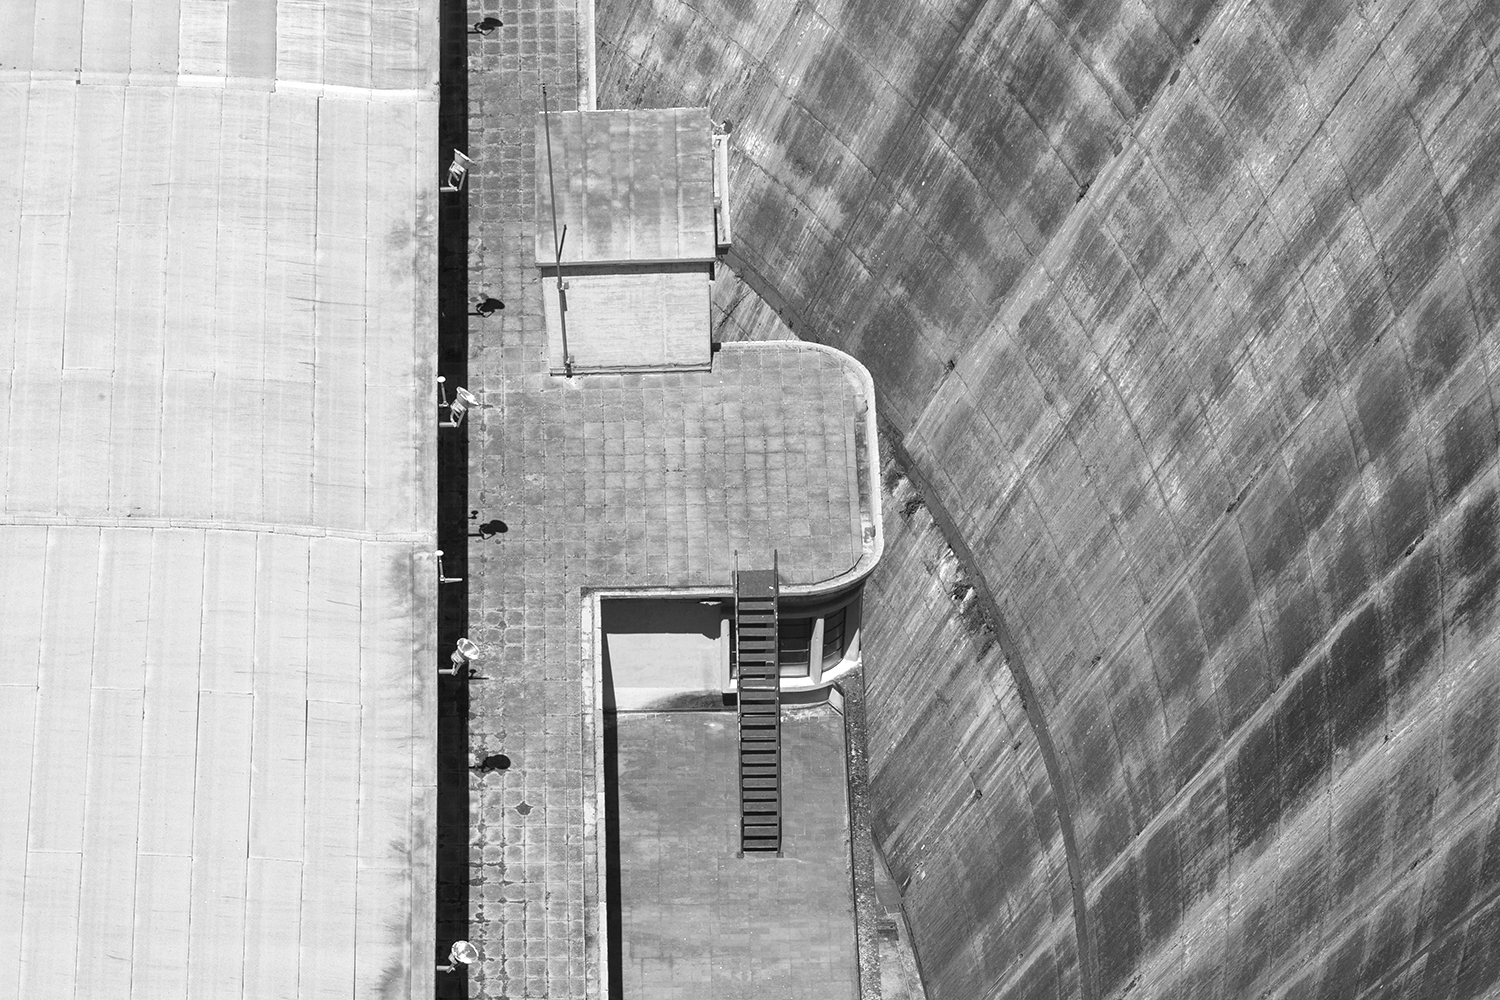 carina martins, hub-structures - detail of a dam